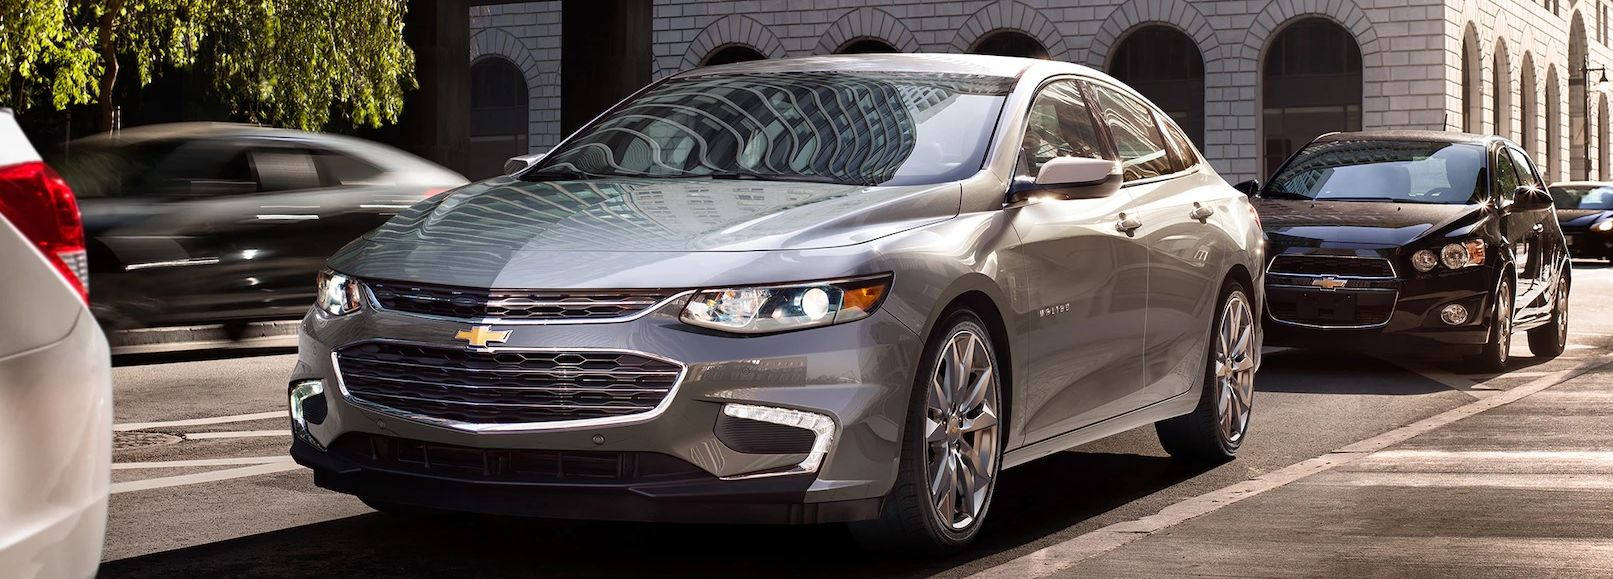 design chevrolet car interior previous year malibu size mid